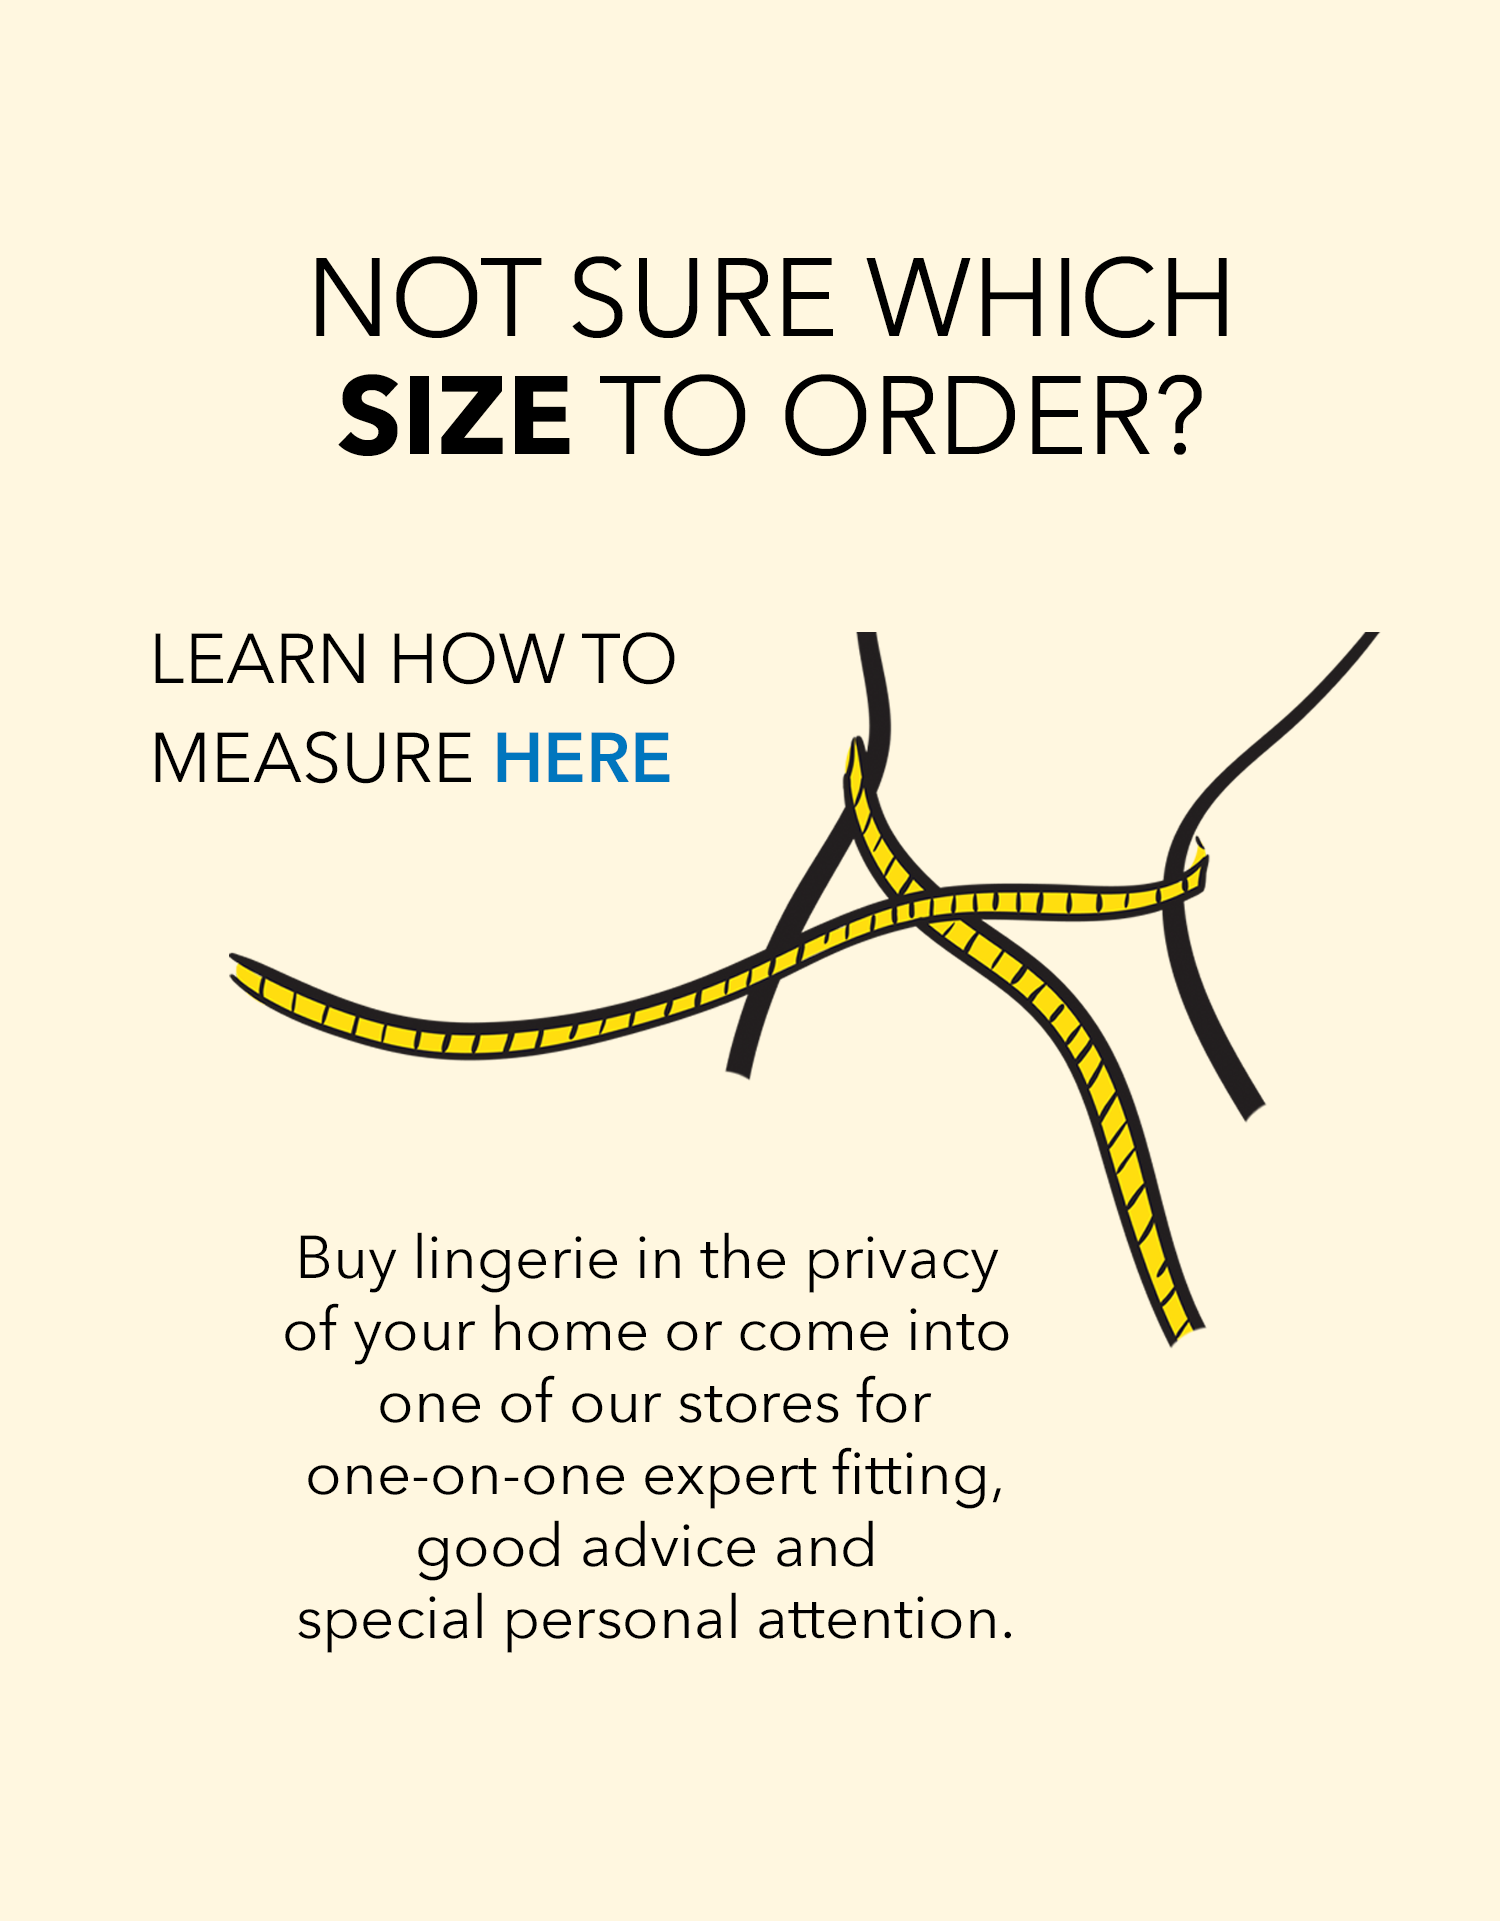 Not sure which size to order? Get a good lingerie fit. Learn how to measure here.